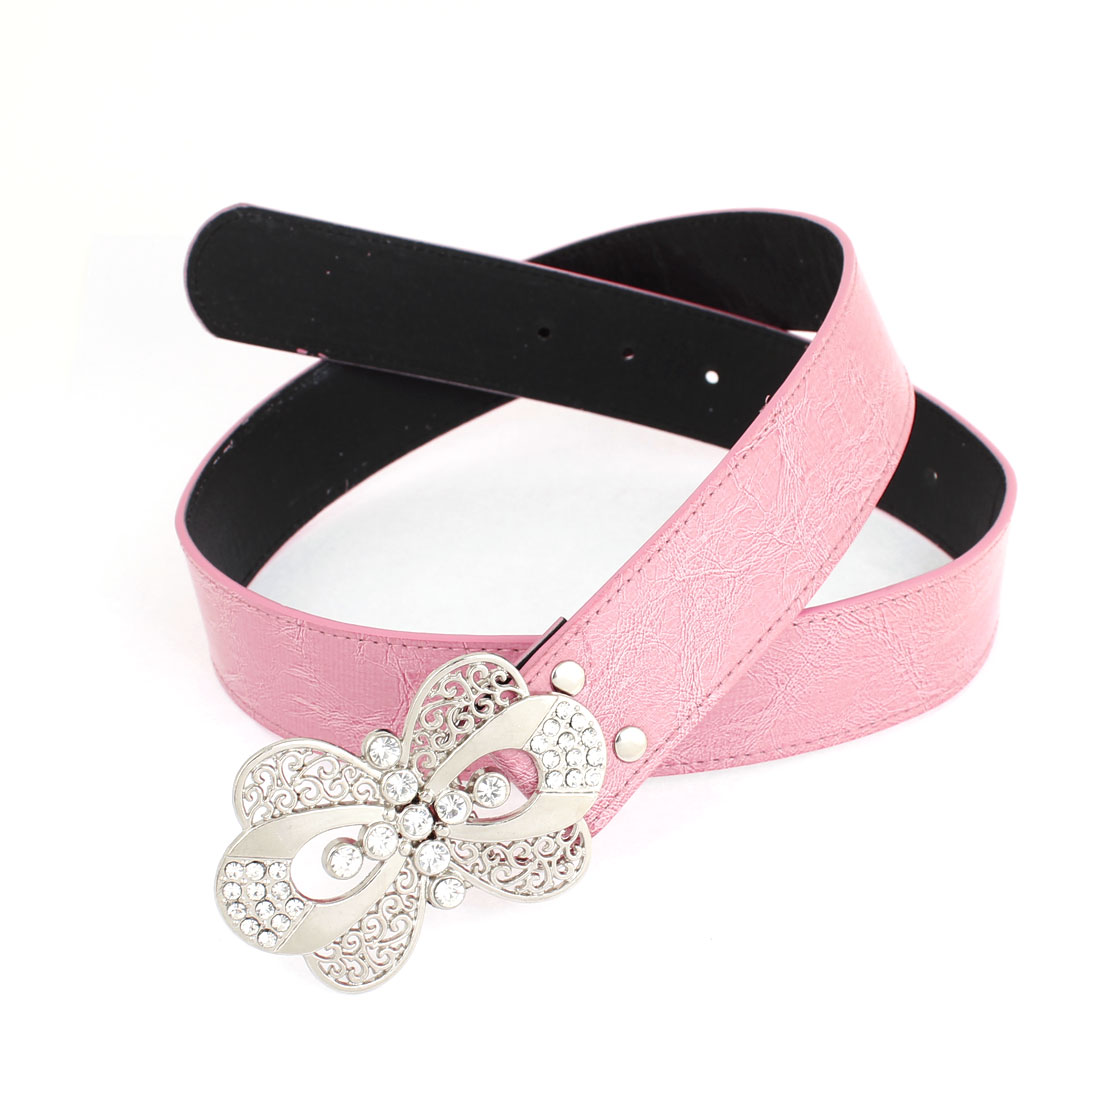 Woman Butterfly Accent Press Buckle Faux Leather Belt Adjustable Waistband Pink